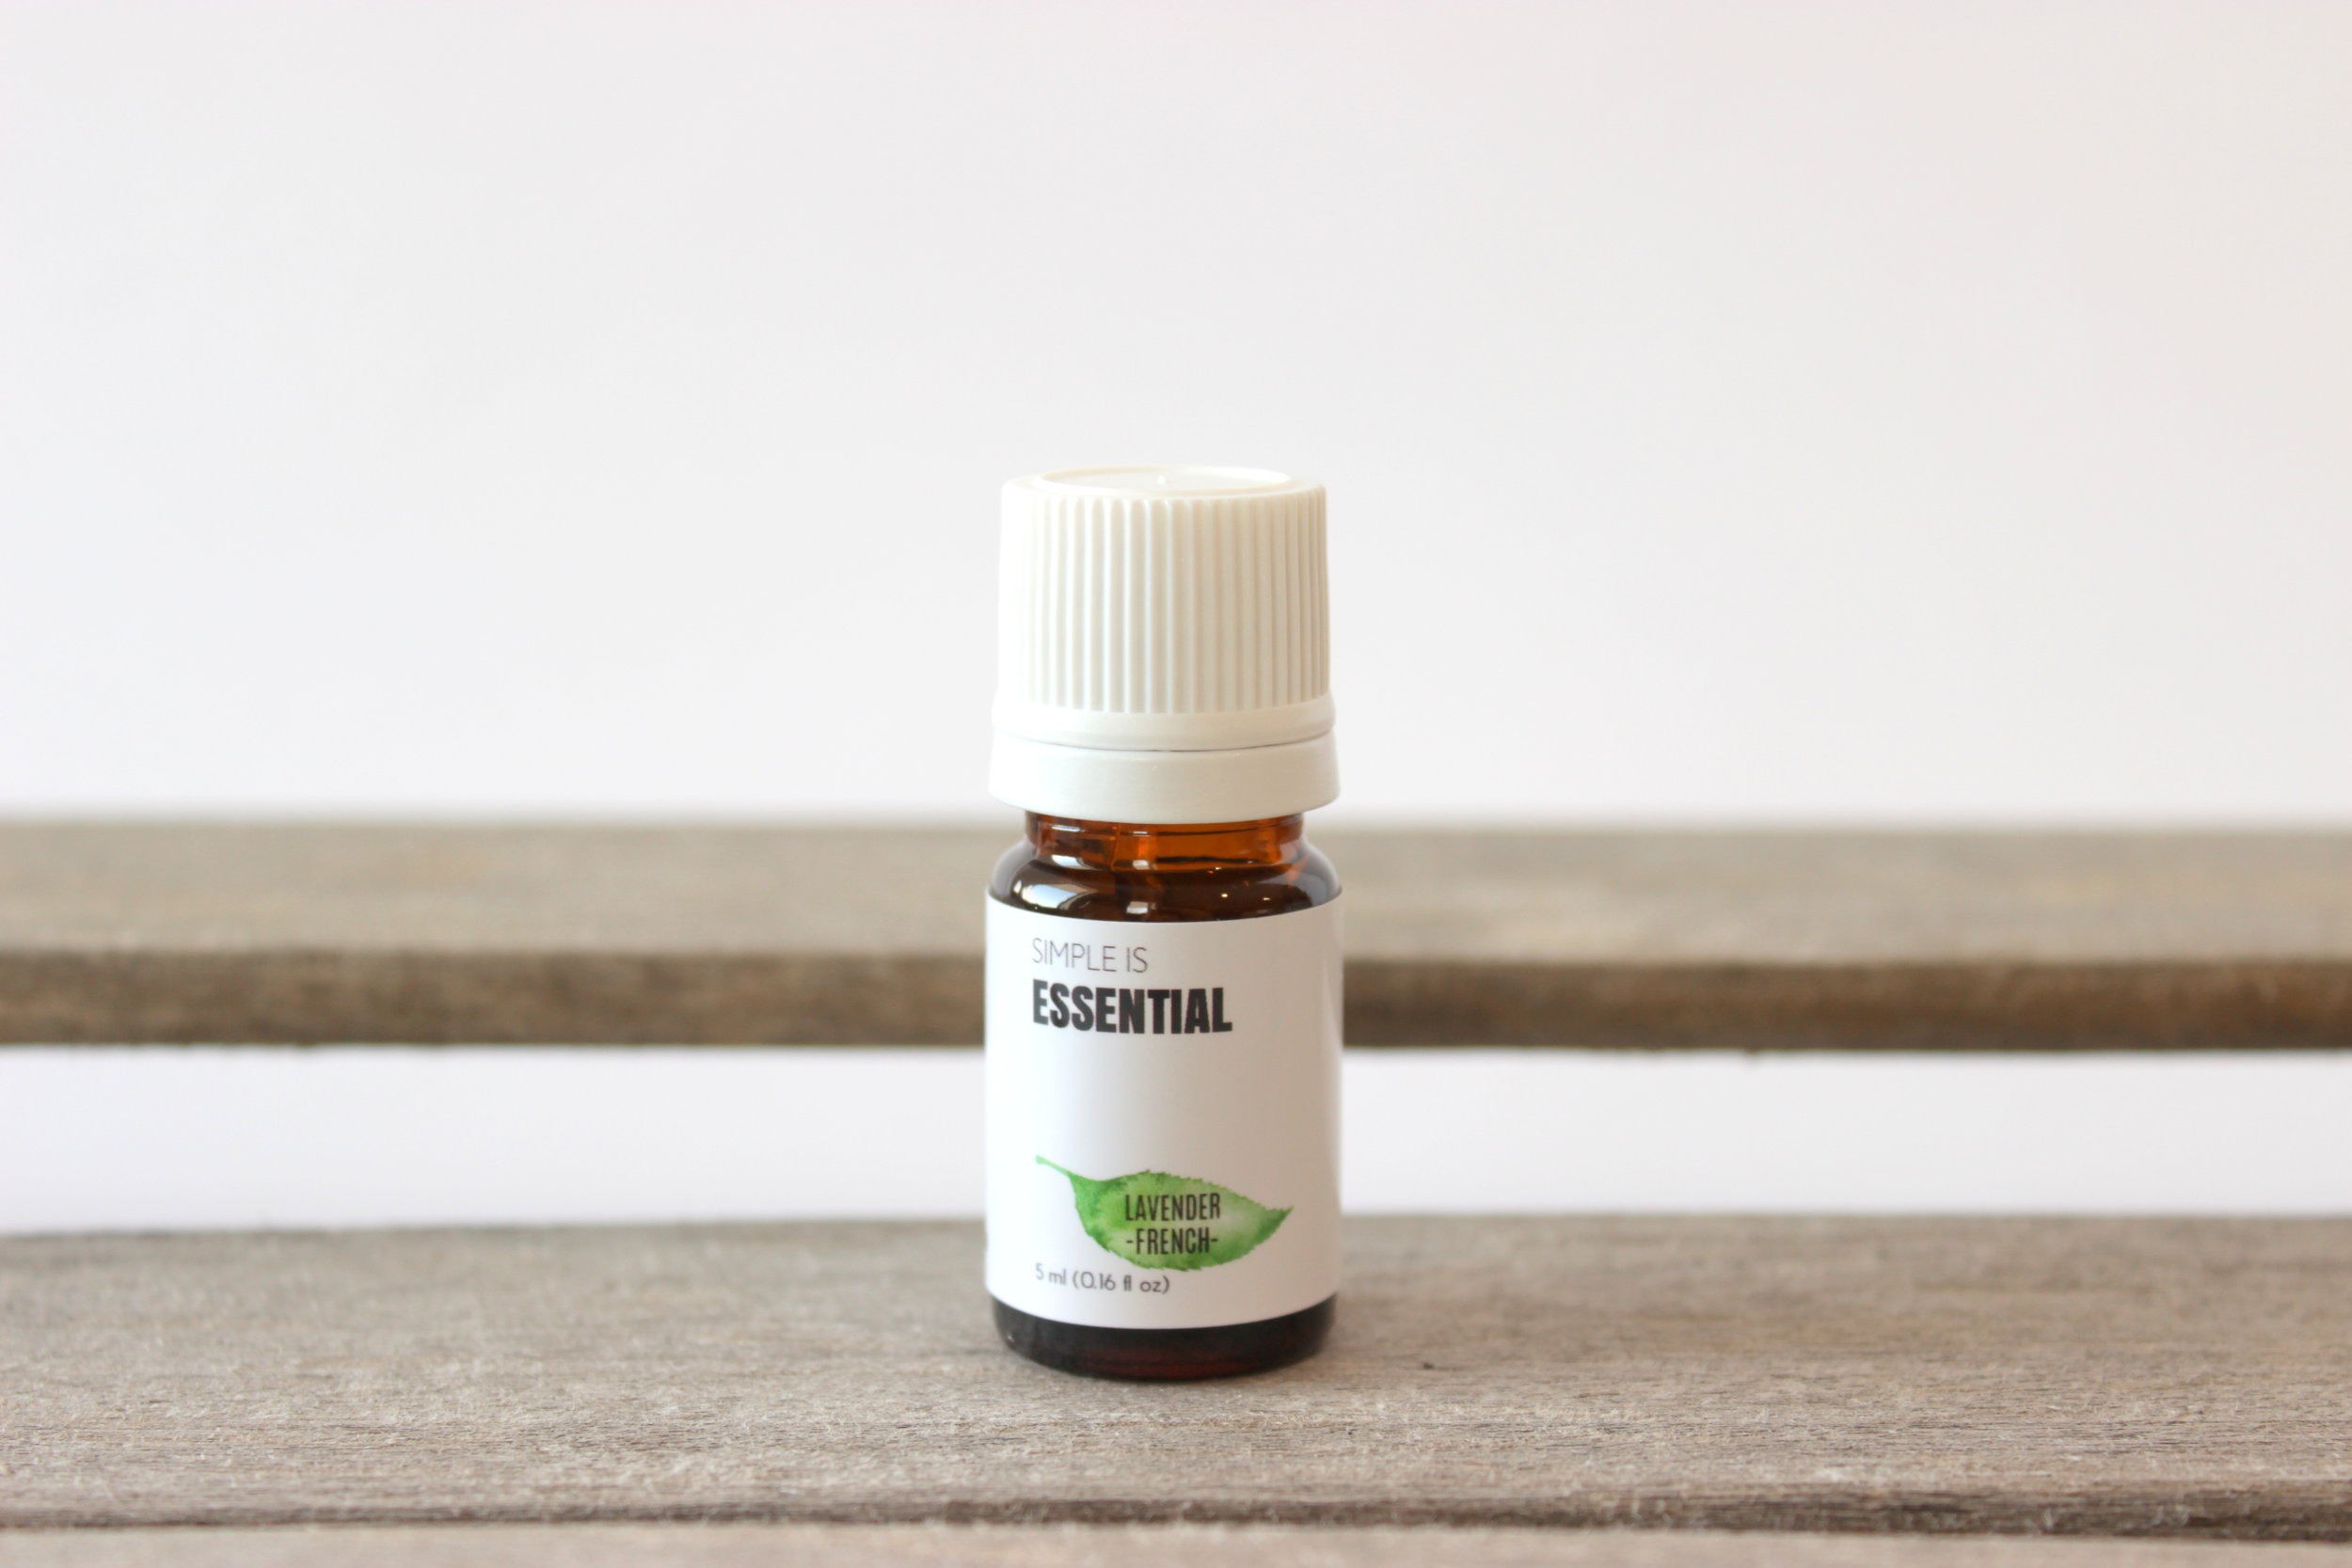 Essential Oils   100% pure essential oils to use in your diffuser or you can dilute with a carrier oil to create your own blend to wear on your skin.